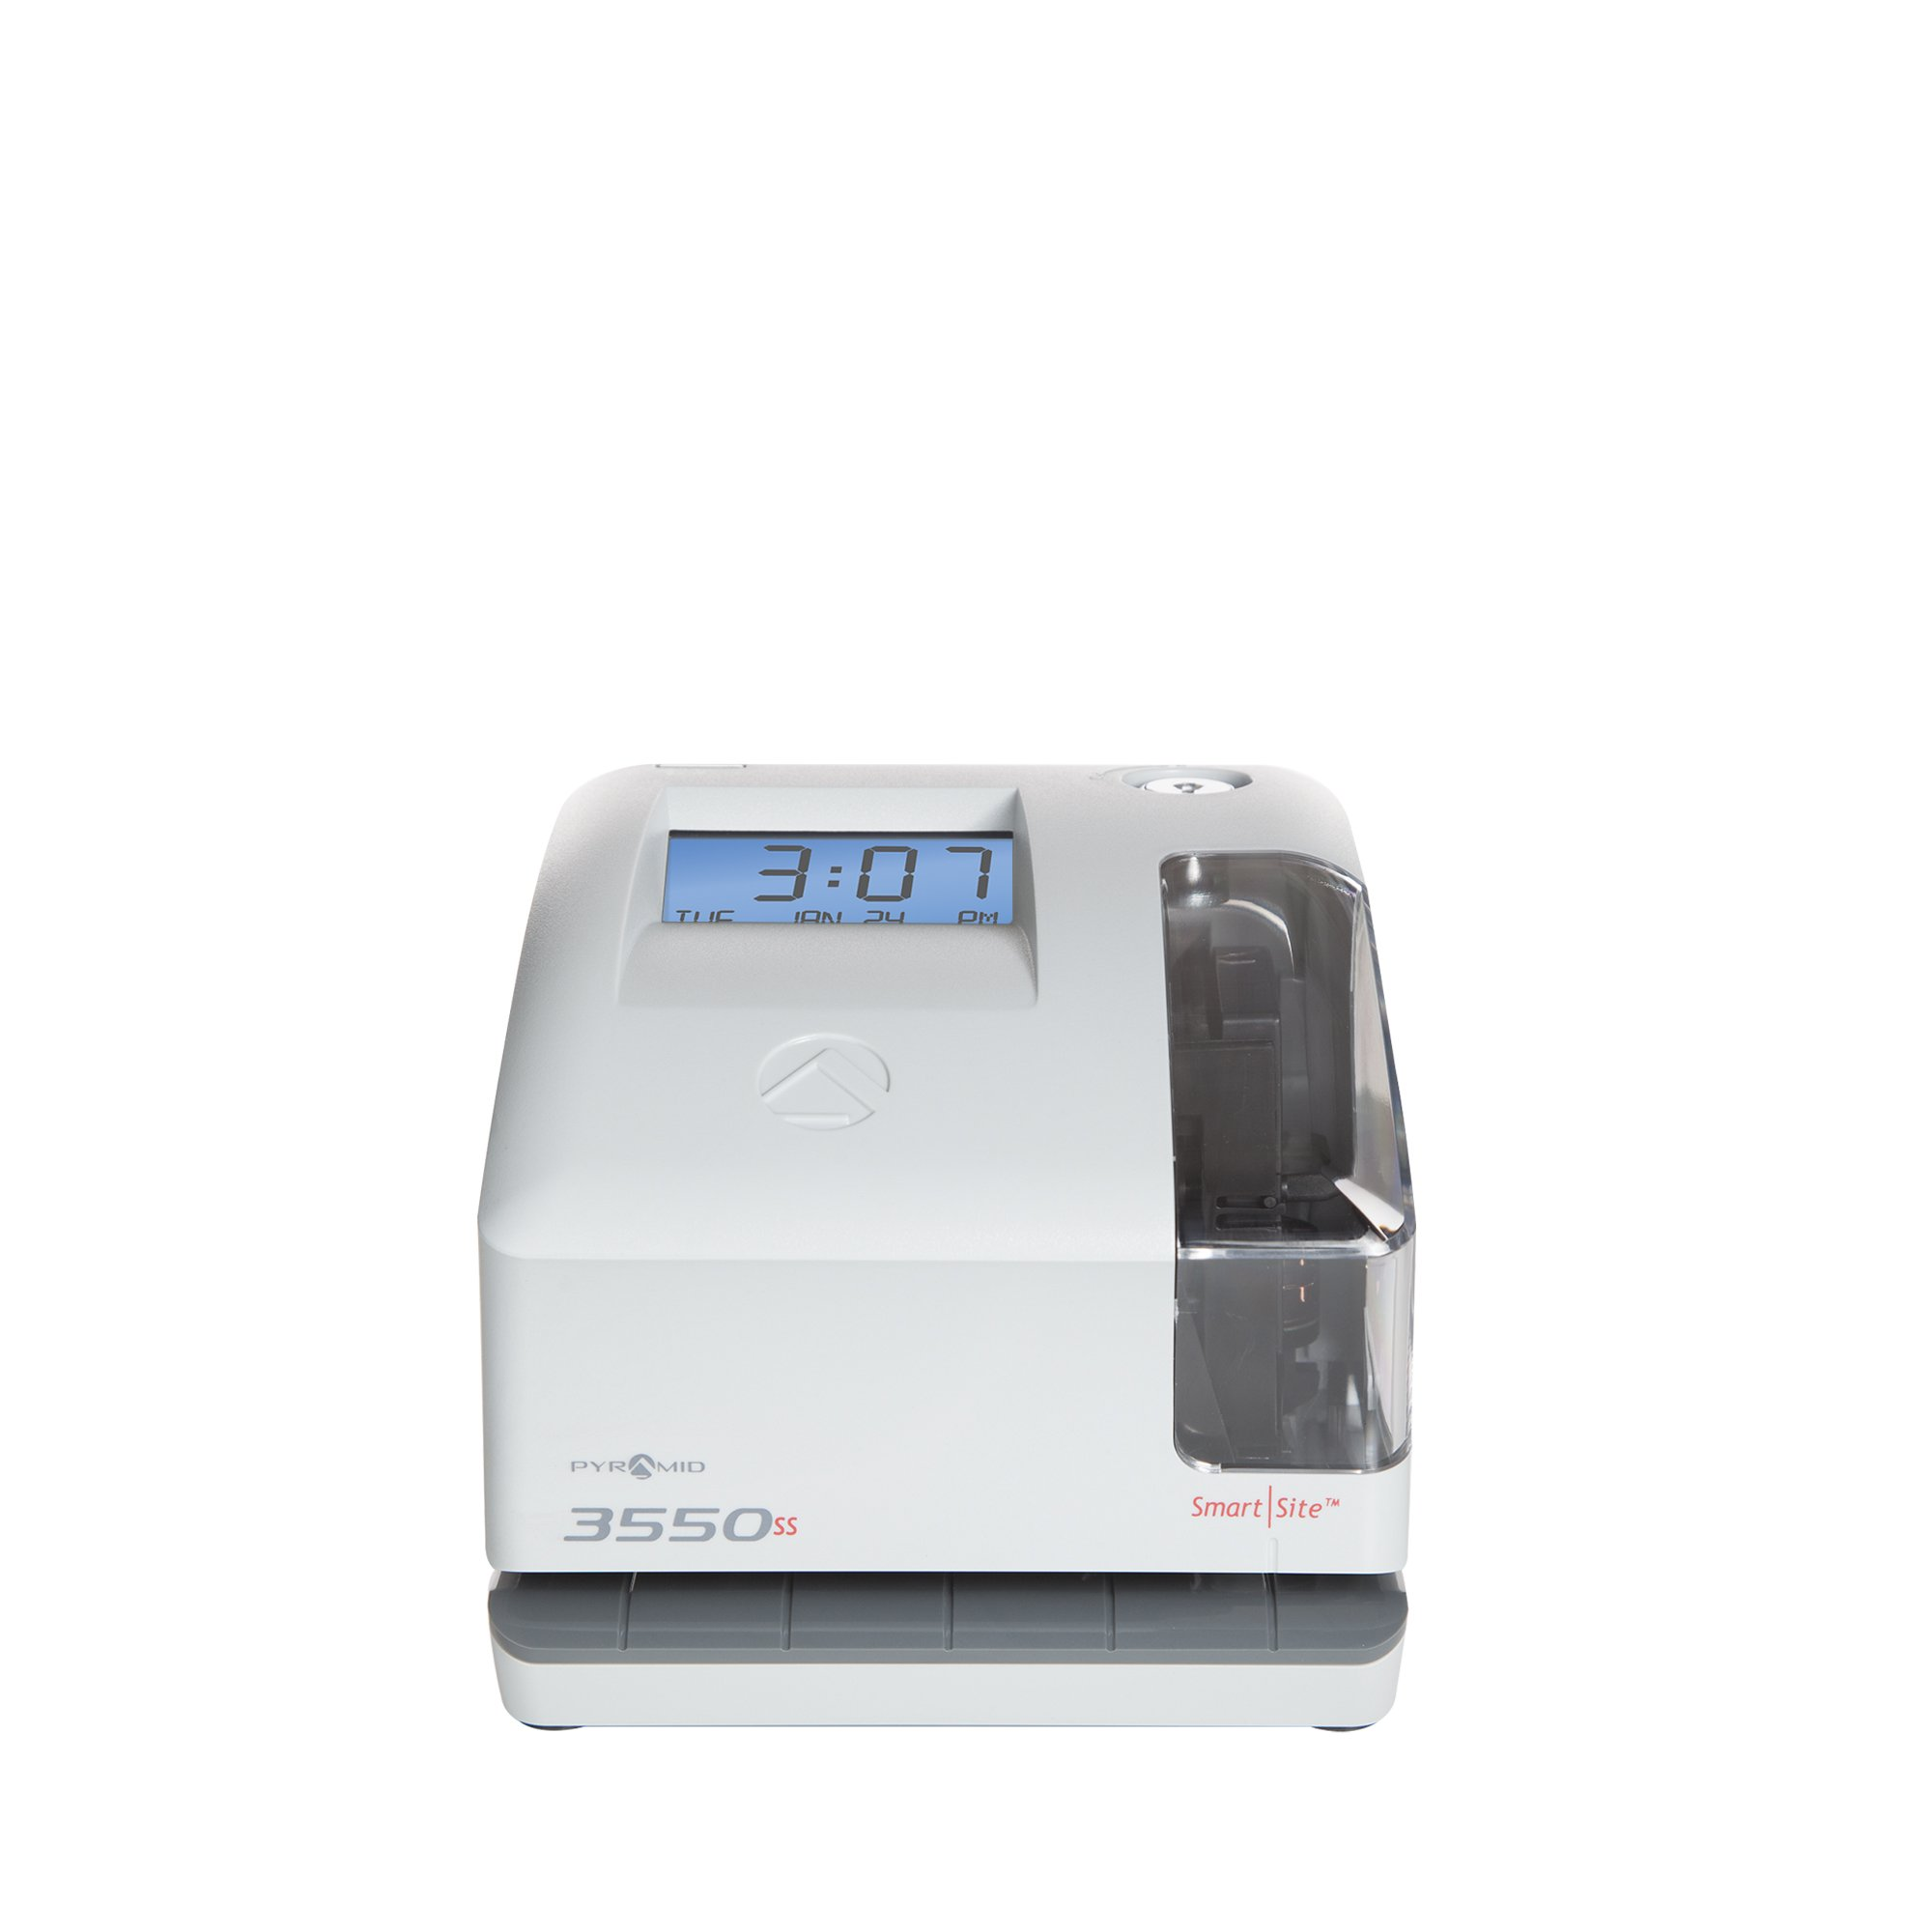 Pyramid 3550ss SmartSite Time Clock and Document Stamp - Made in USA by Pyramid Time Systems (Image #9)